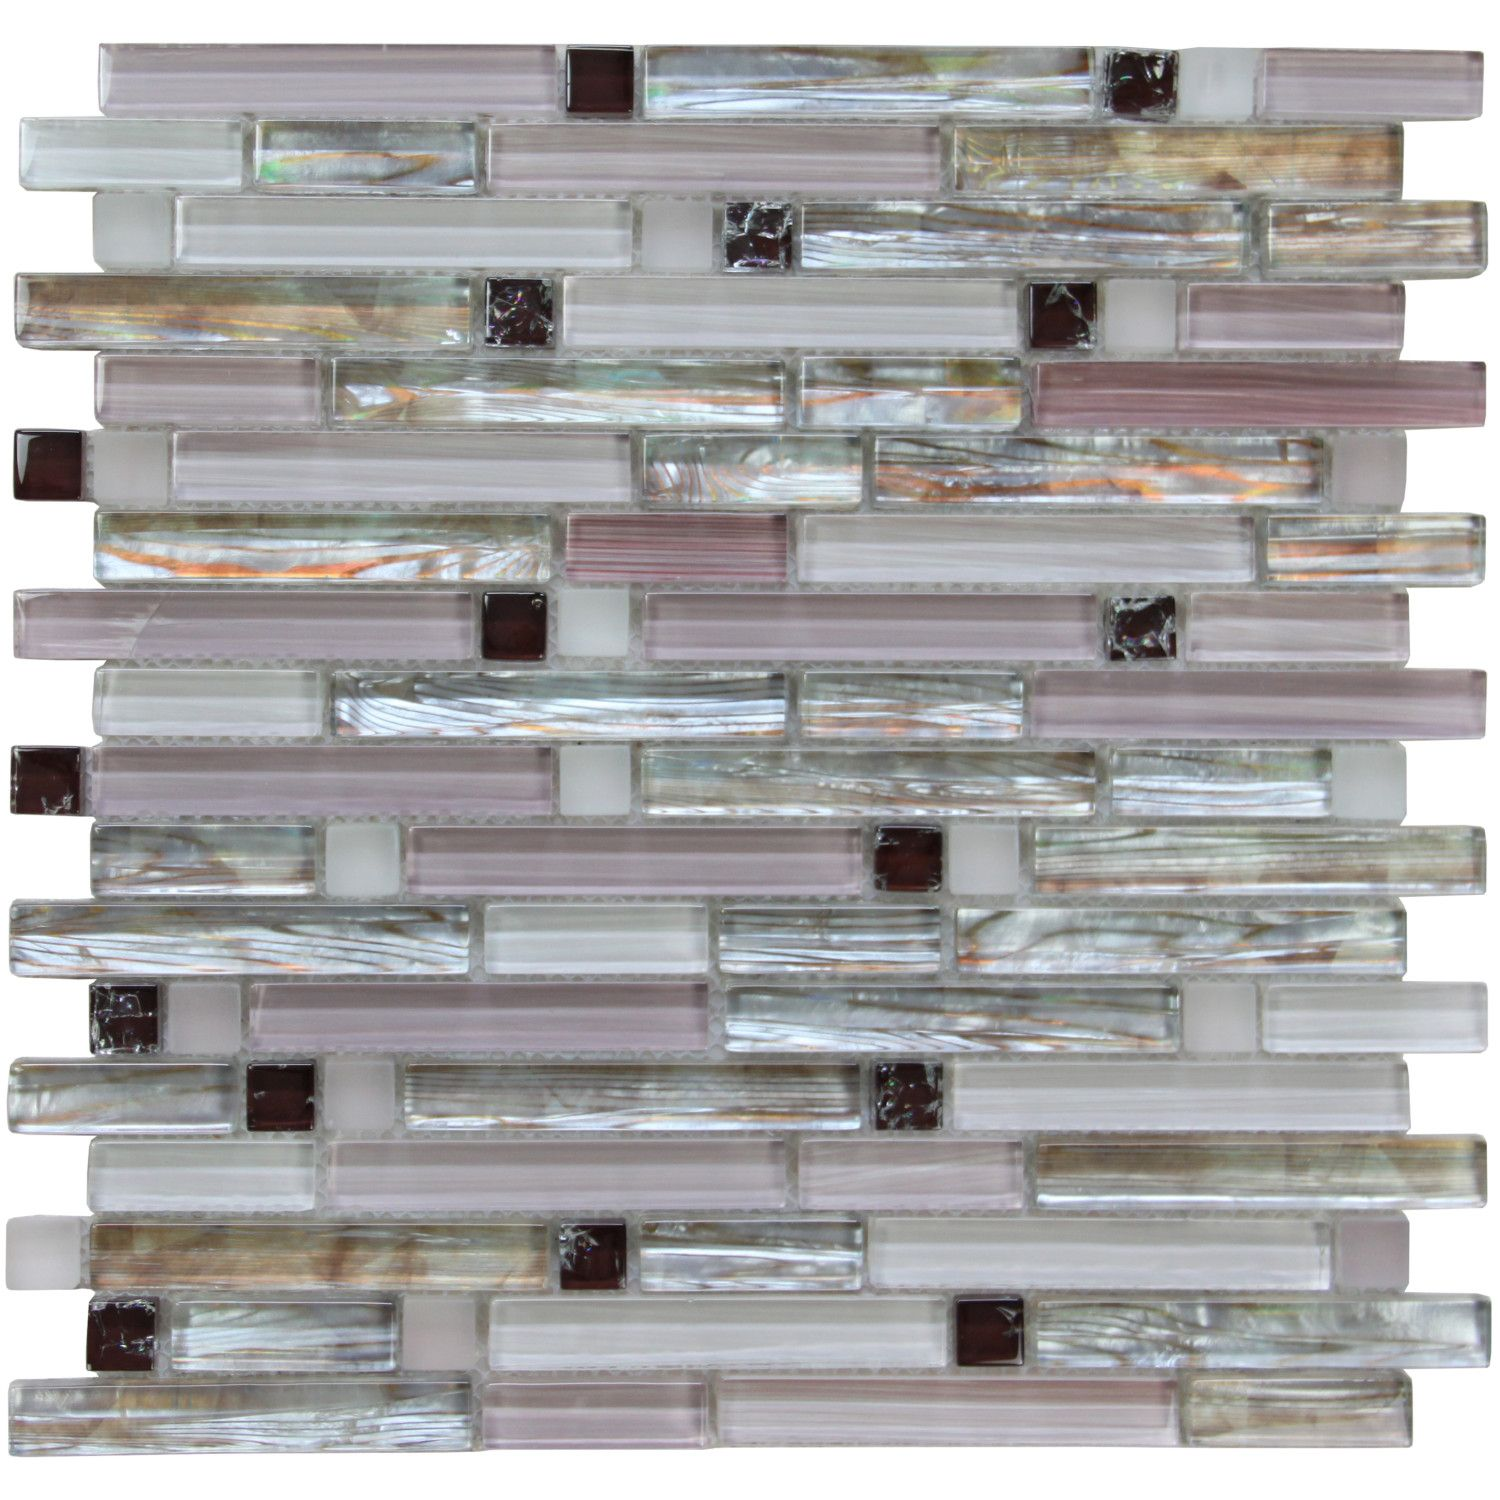 Backsplash Mosaic offers various high quality glass and stone